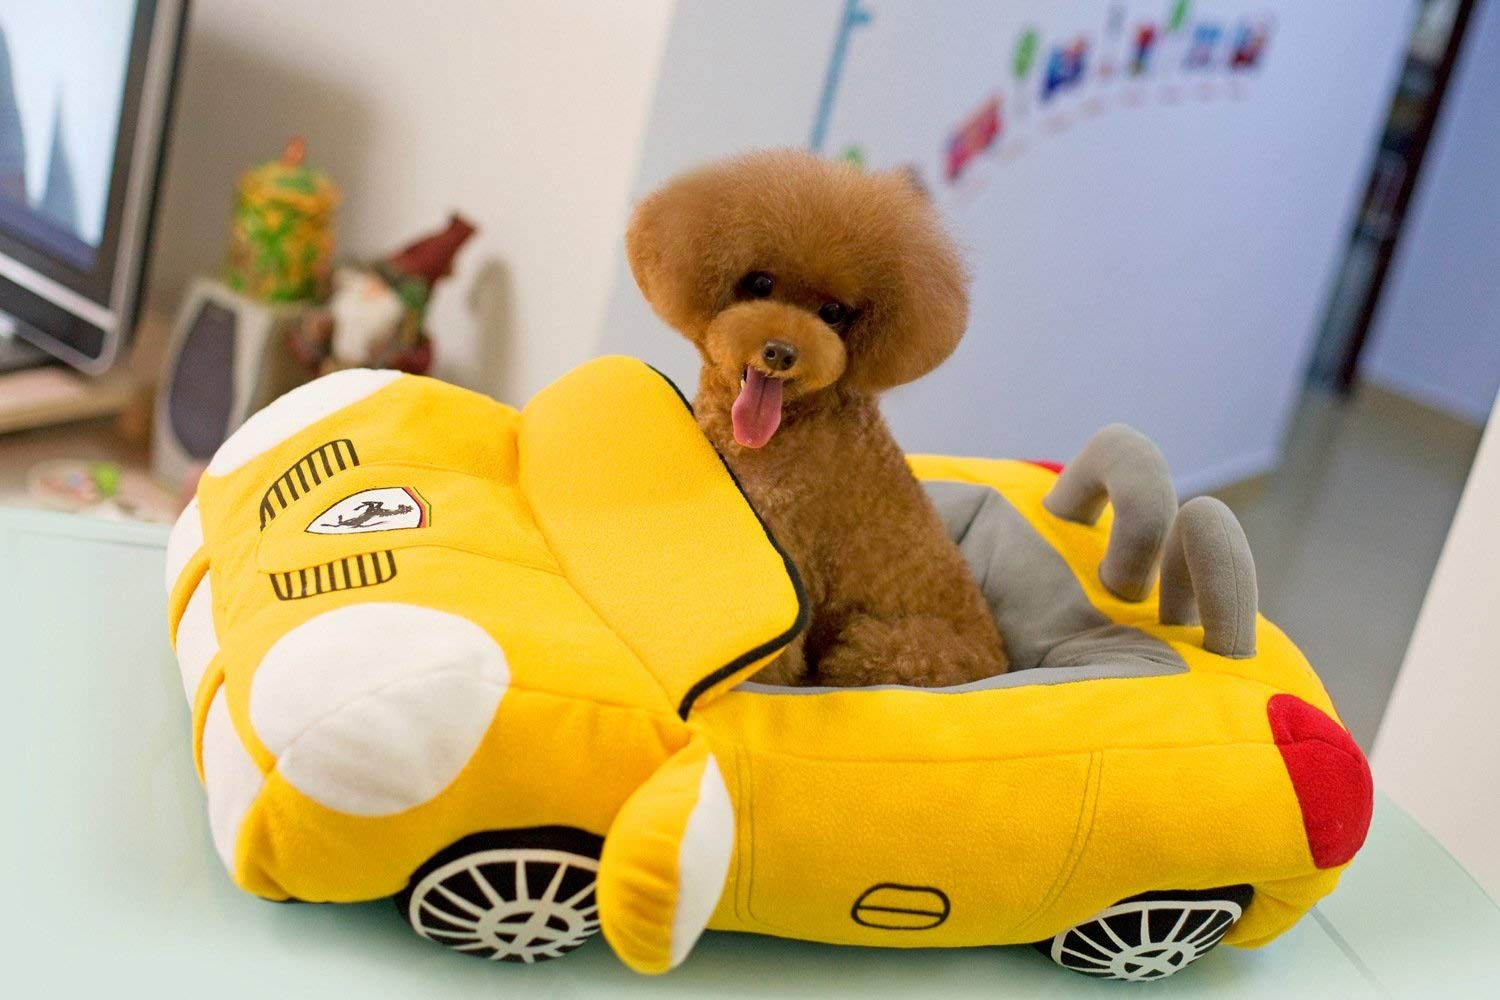 Pet dog Puppy Soft Large Cool Sport Convertible Car Design